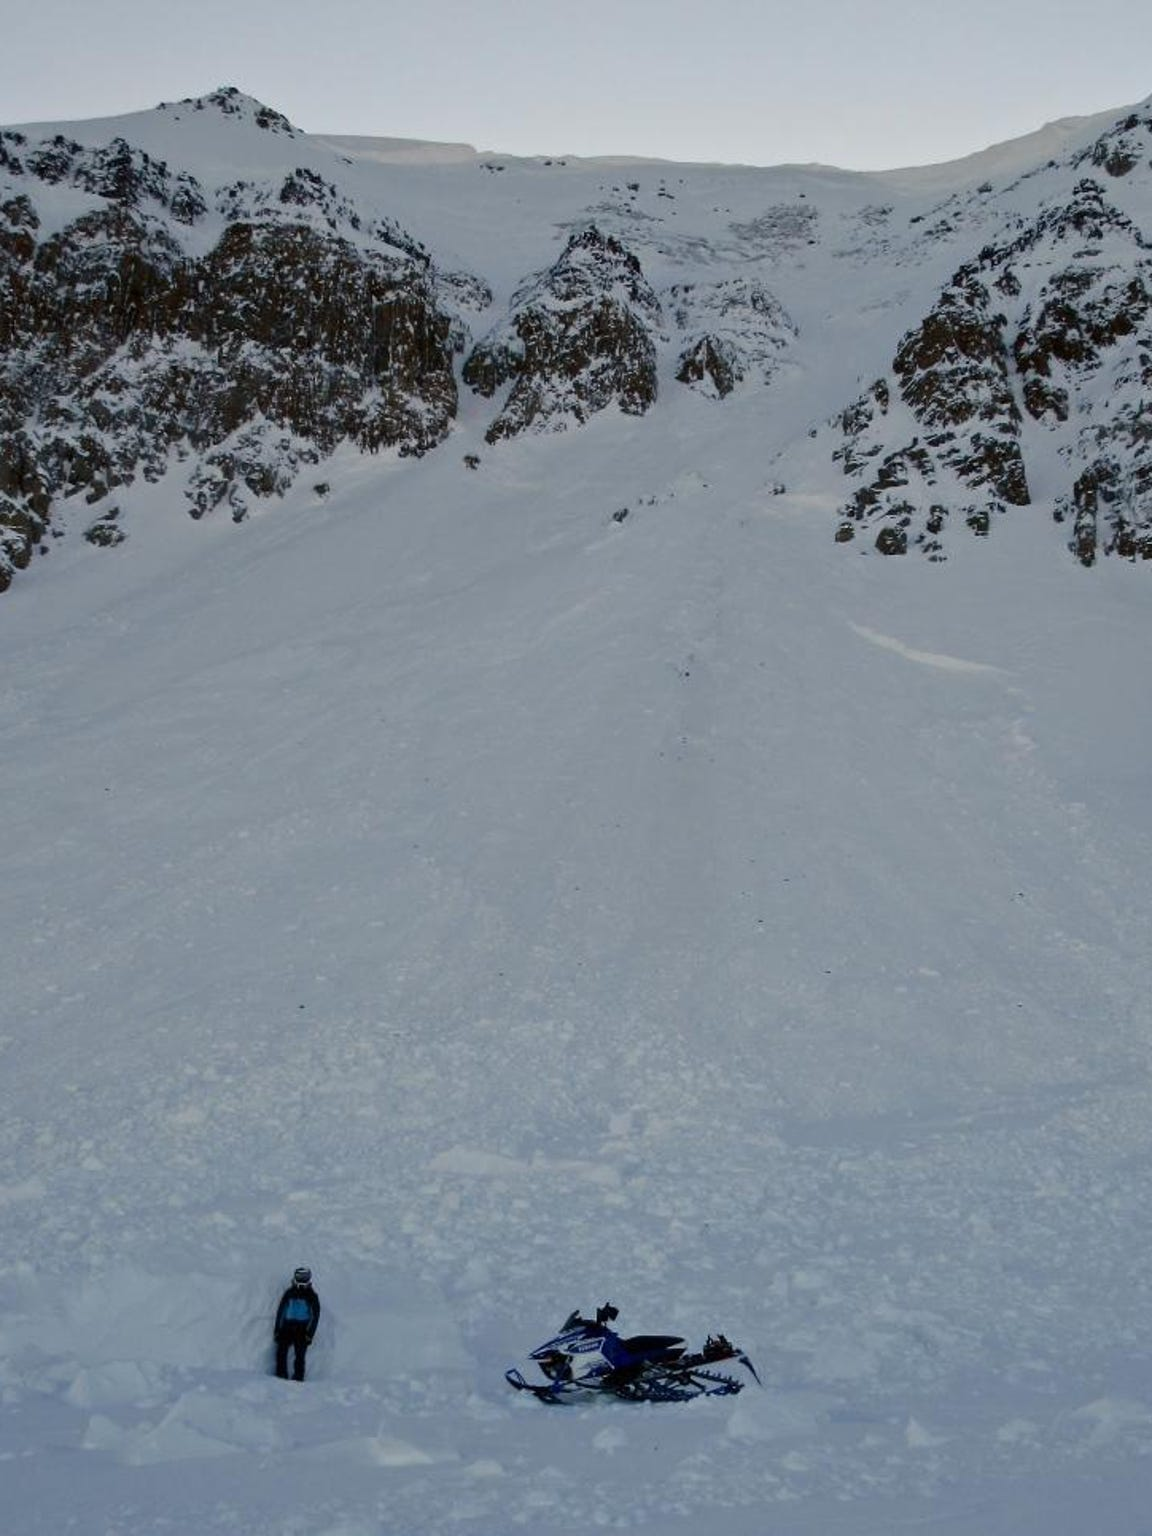 Large natural avalanche that occurred on a wind loaded slope on Sheep Mountain near Cooke City in late December.